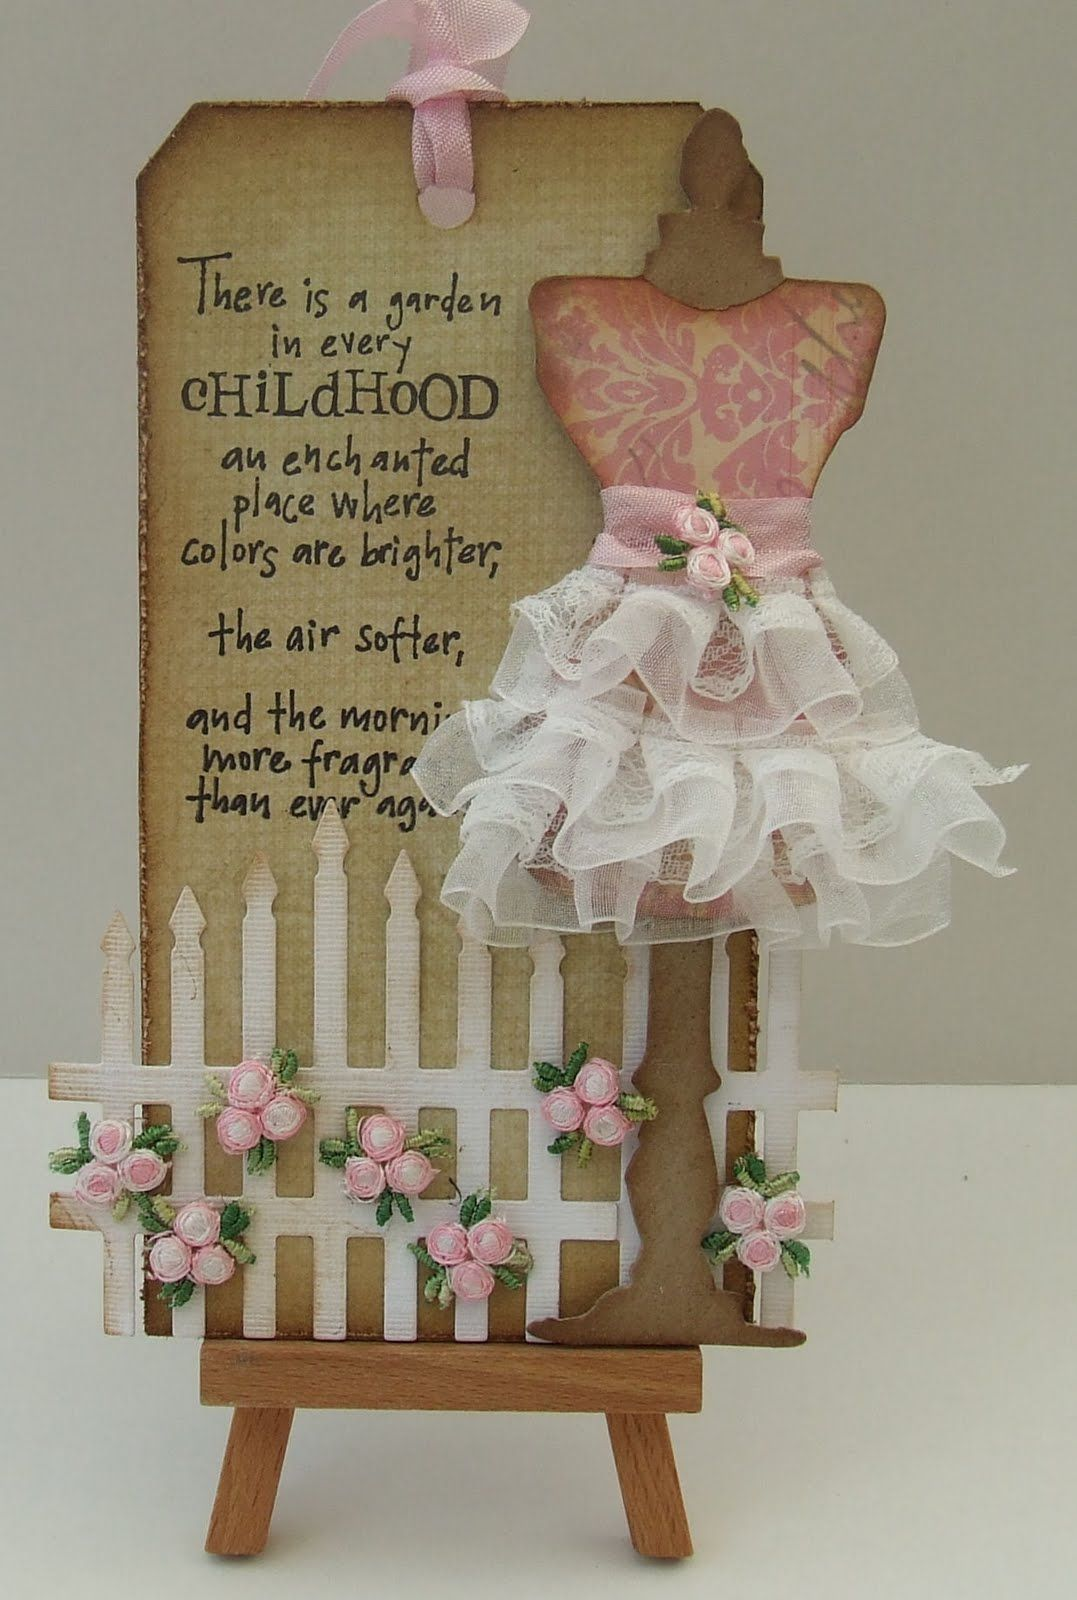 A Girlie Tag Using My New Tim Holtz Die With Images Handmade Tags Card Tags Dress Card